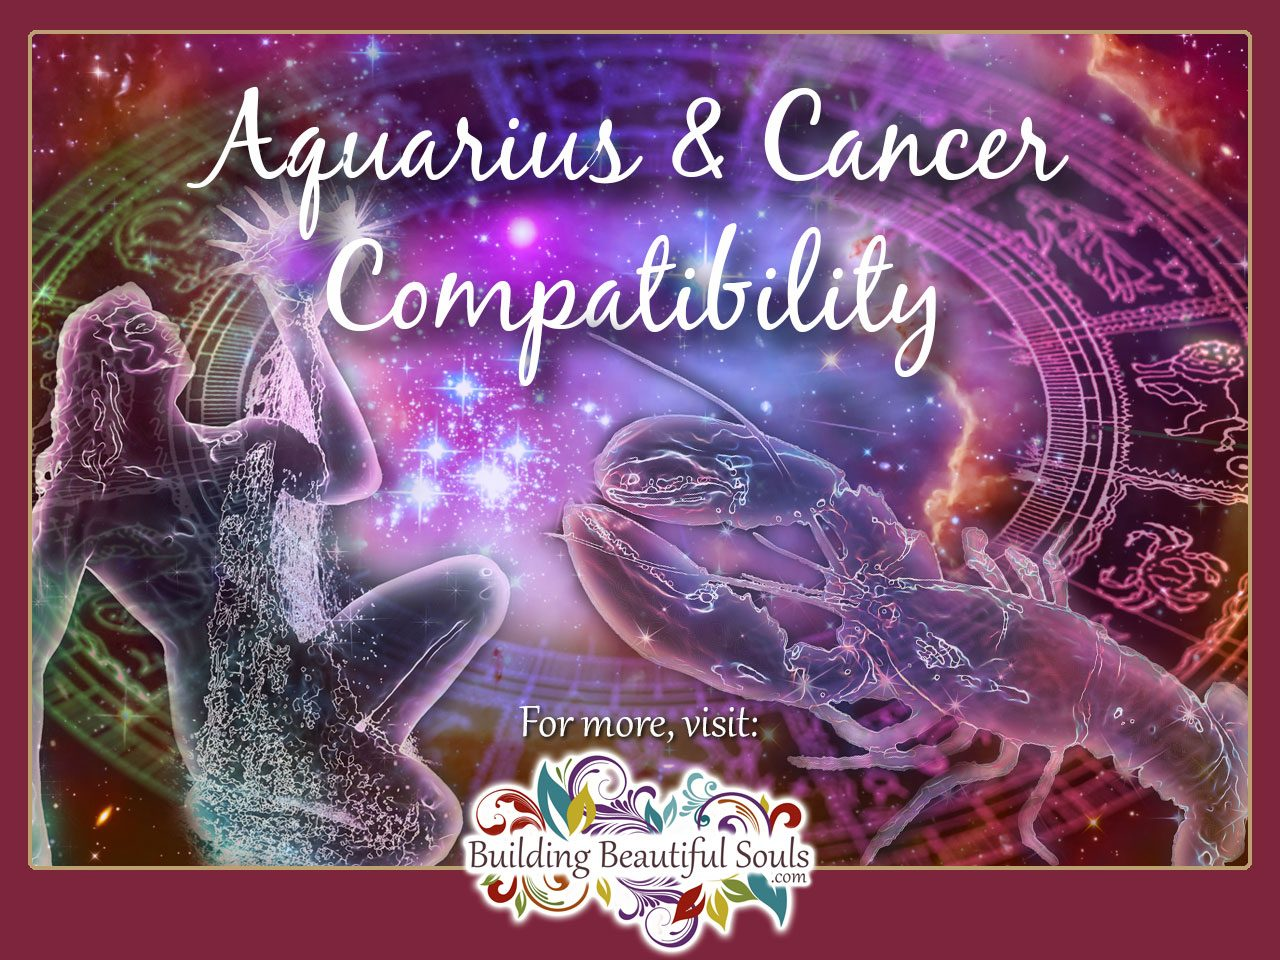 Aquarius and Cancer 1280x960